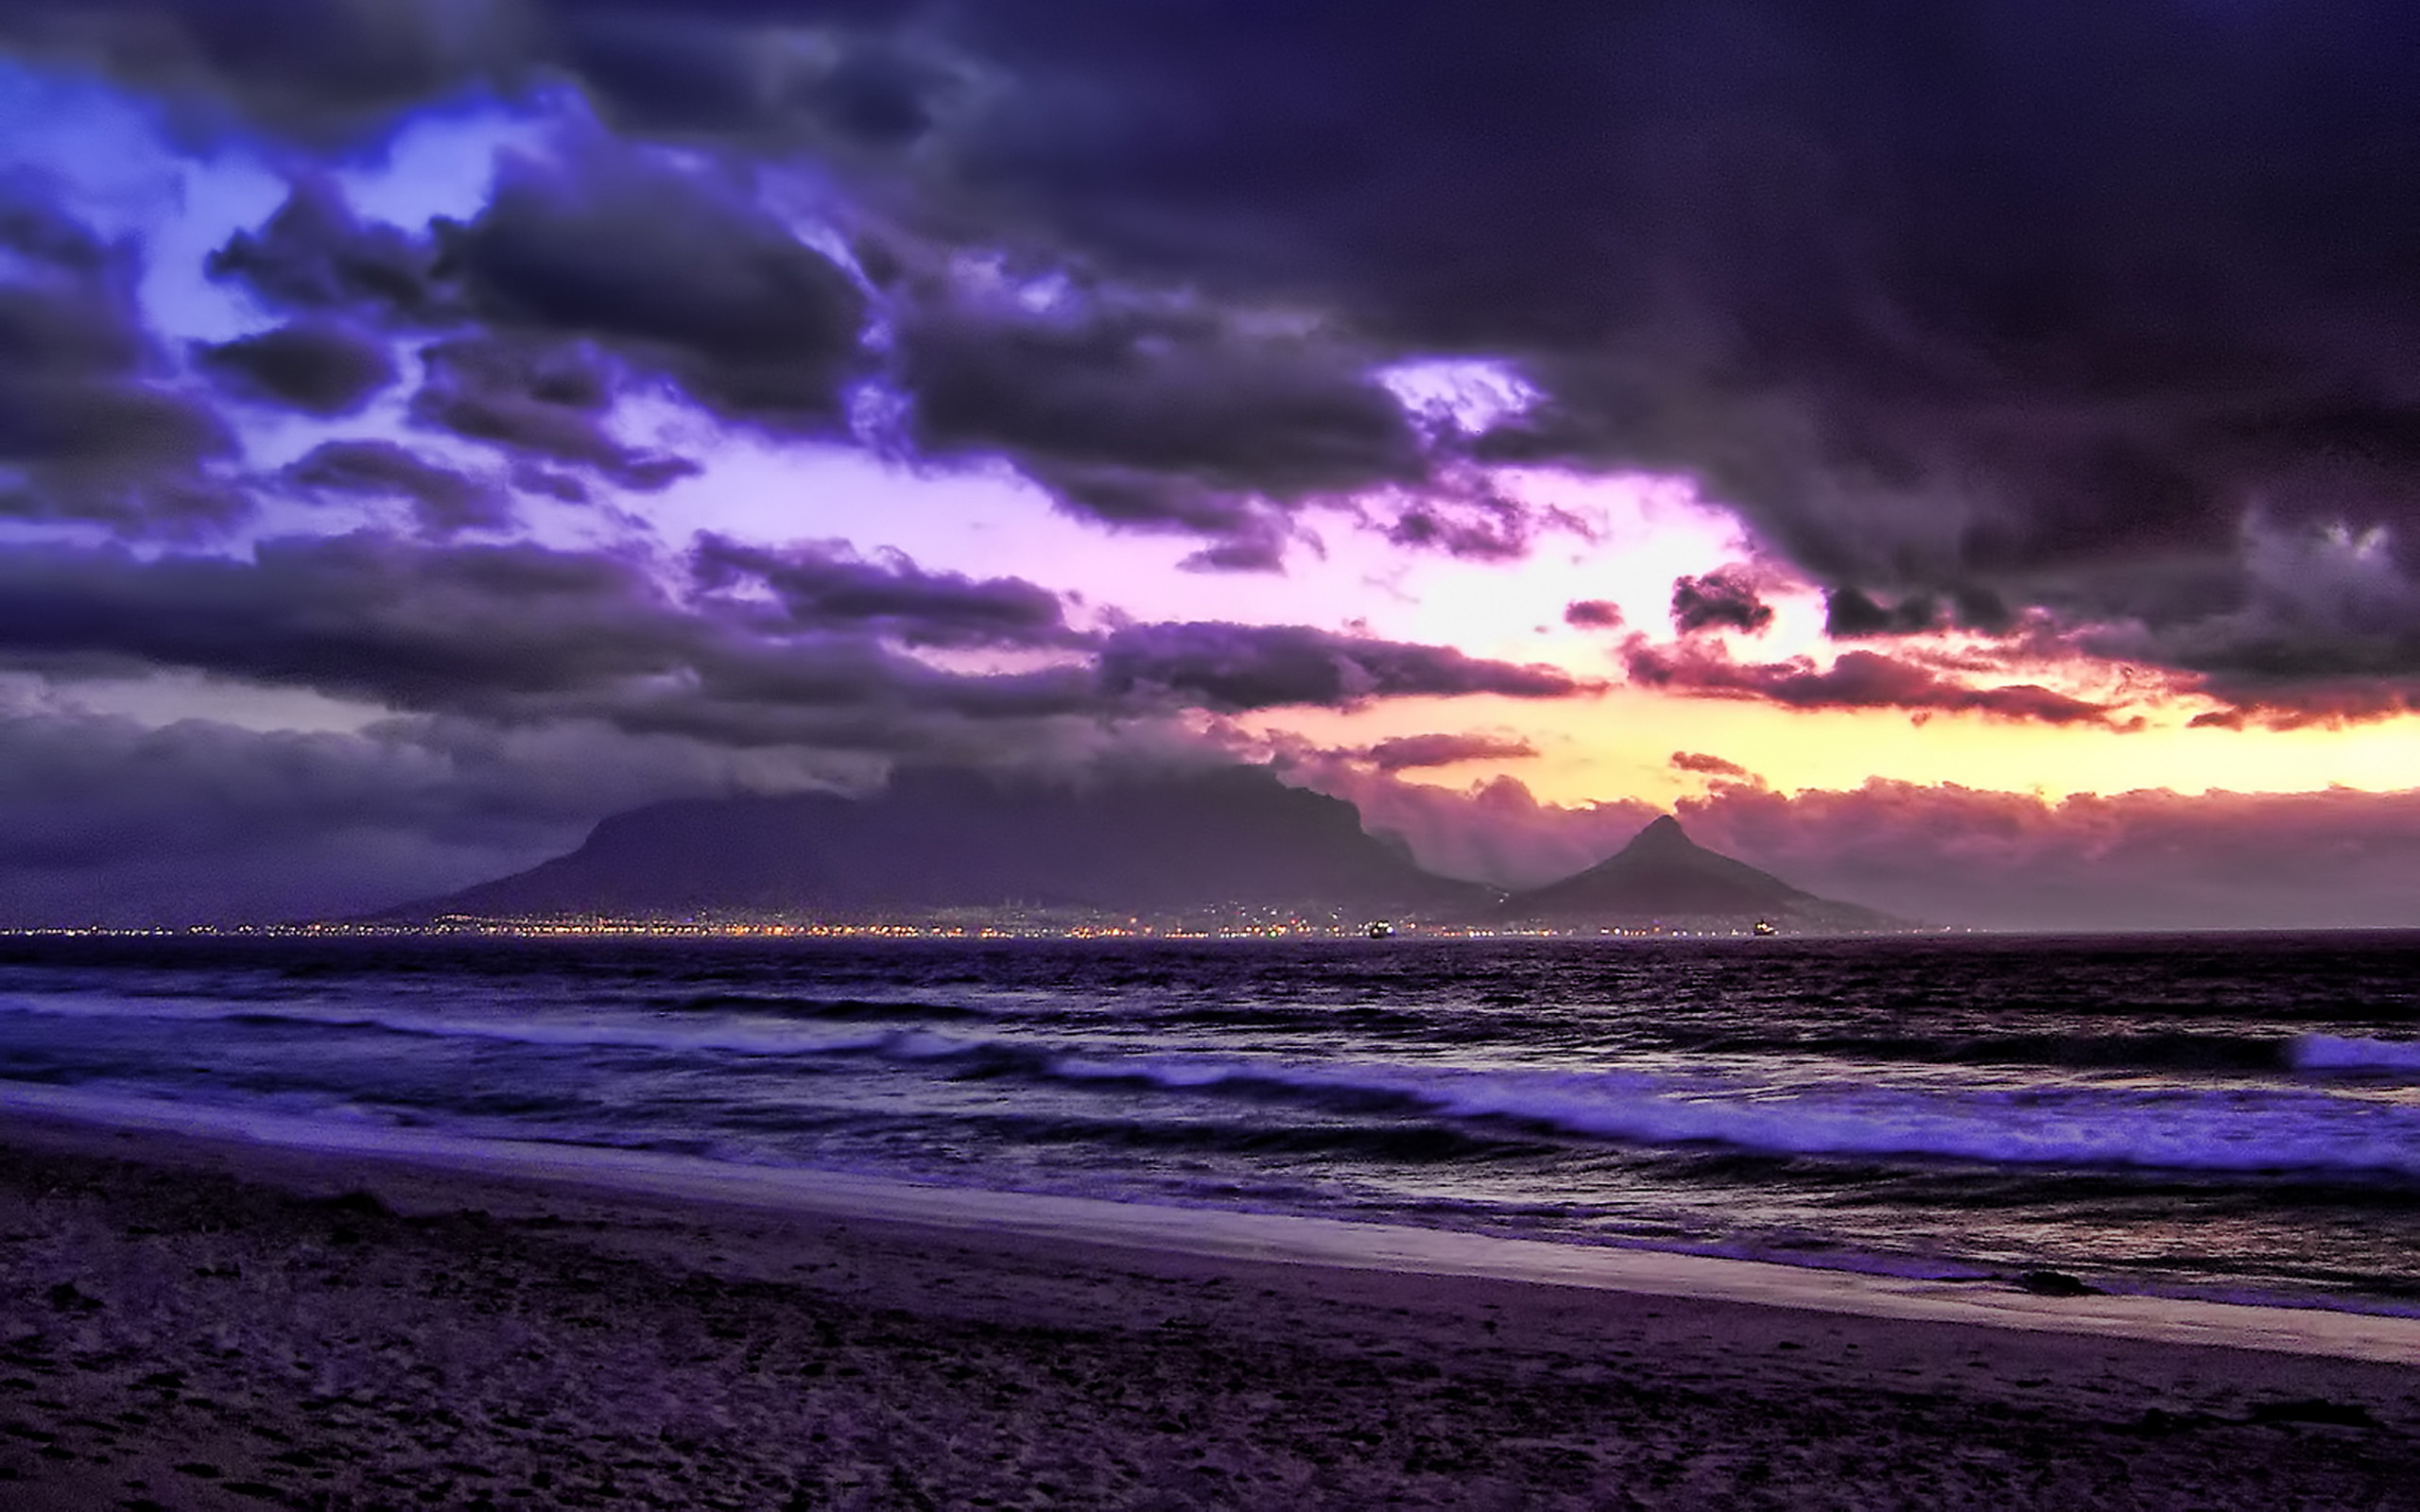 Cape Town Purple South Africa Wallpaper Nature Landscape Wallpaper 2560x1600